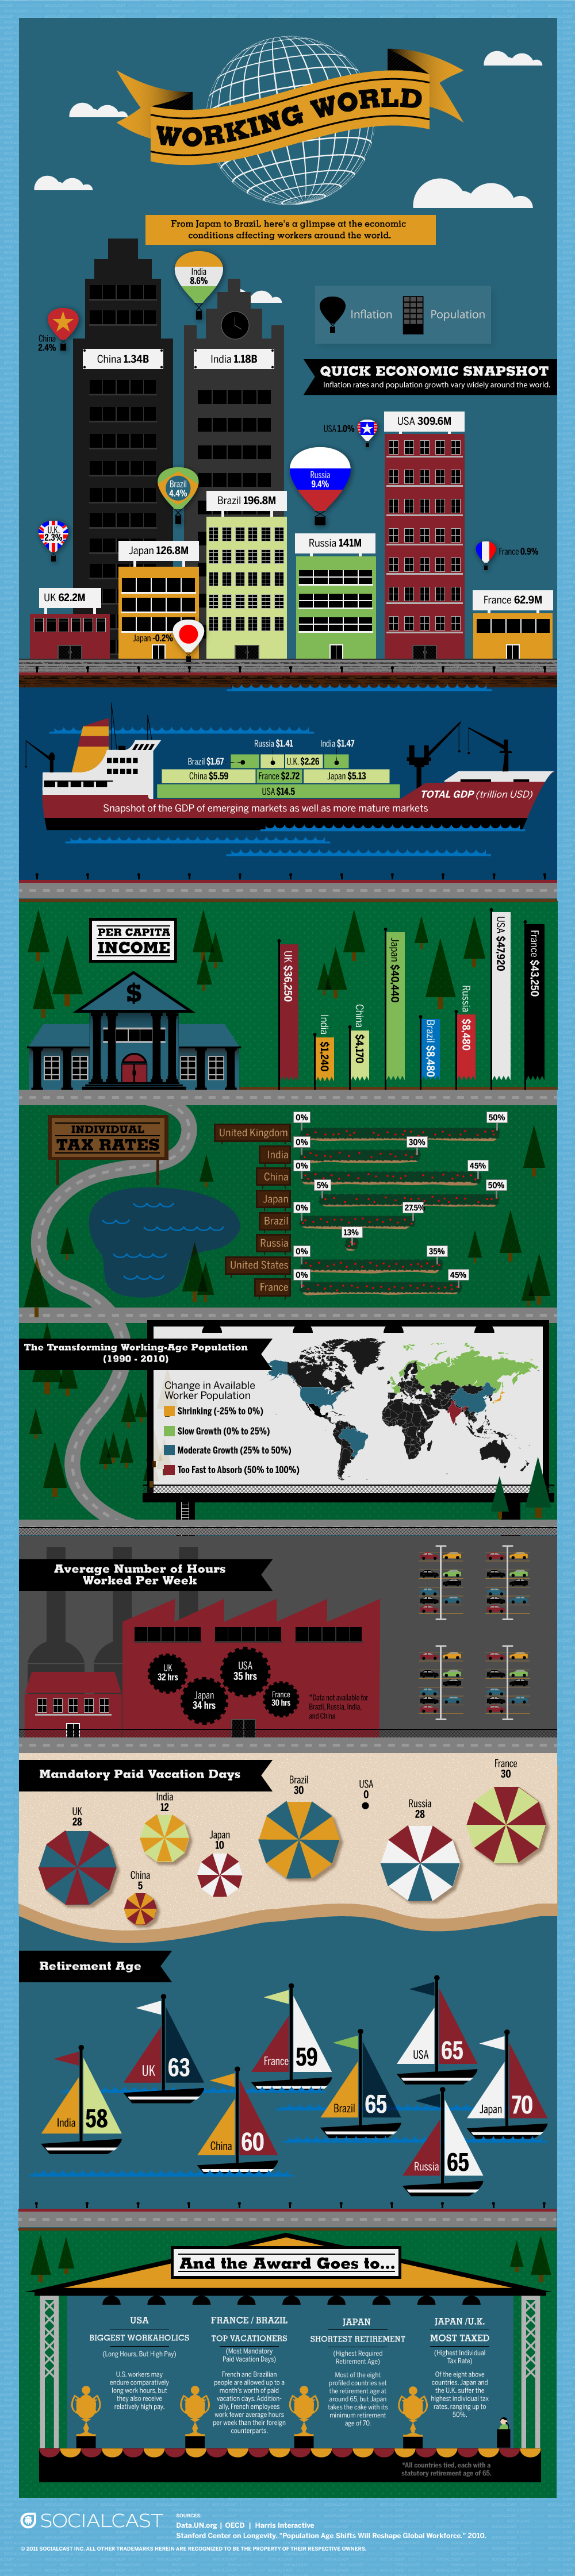 Infographic:  The Working World